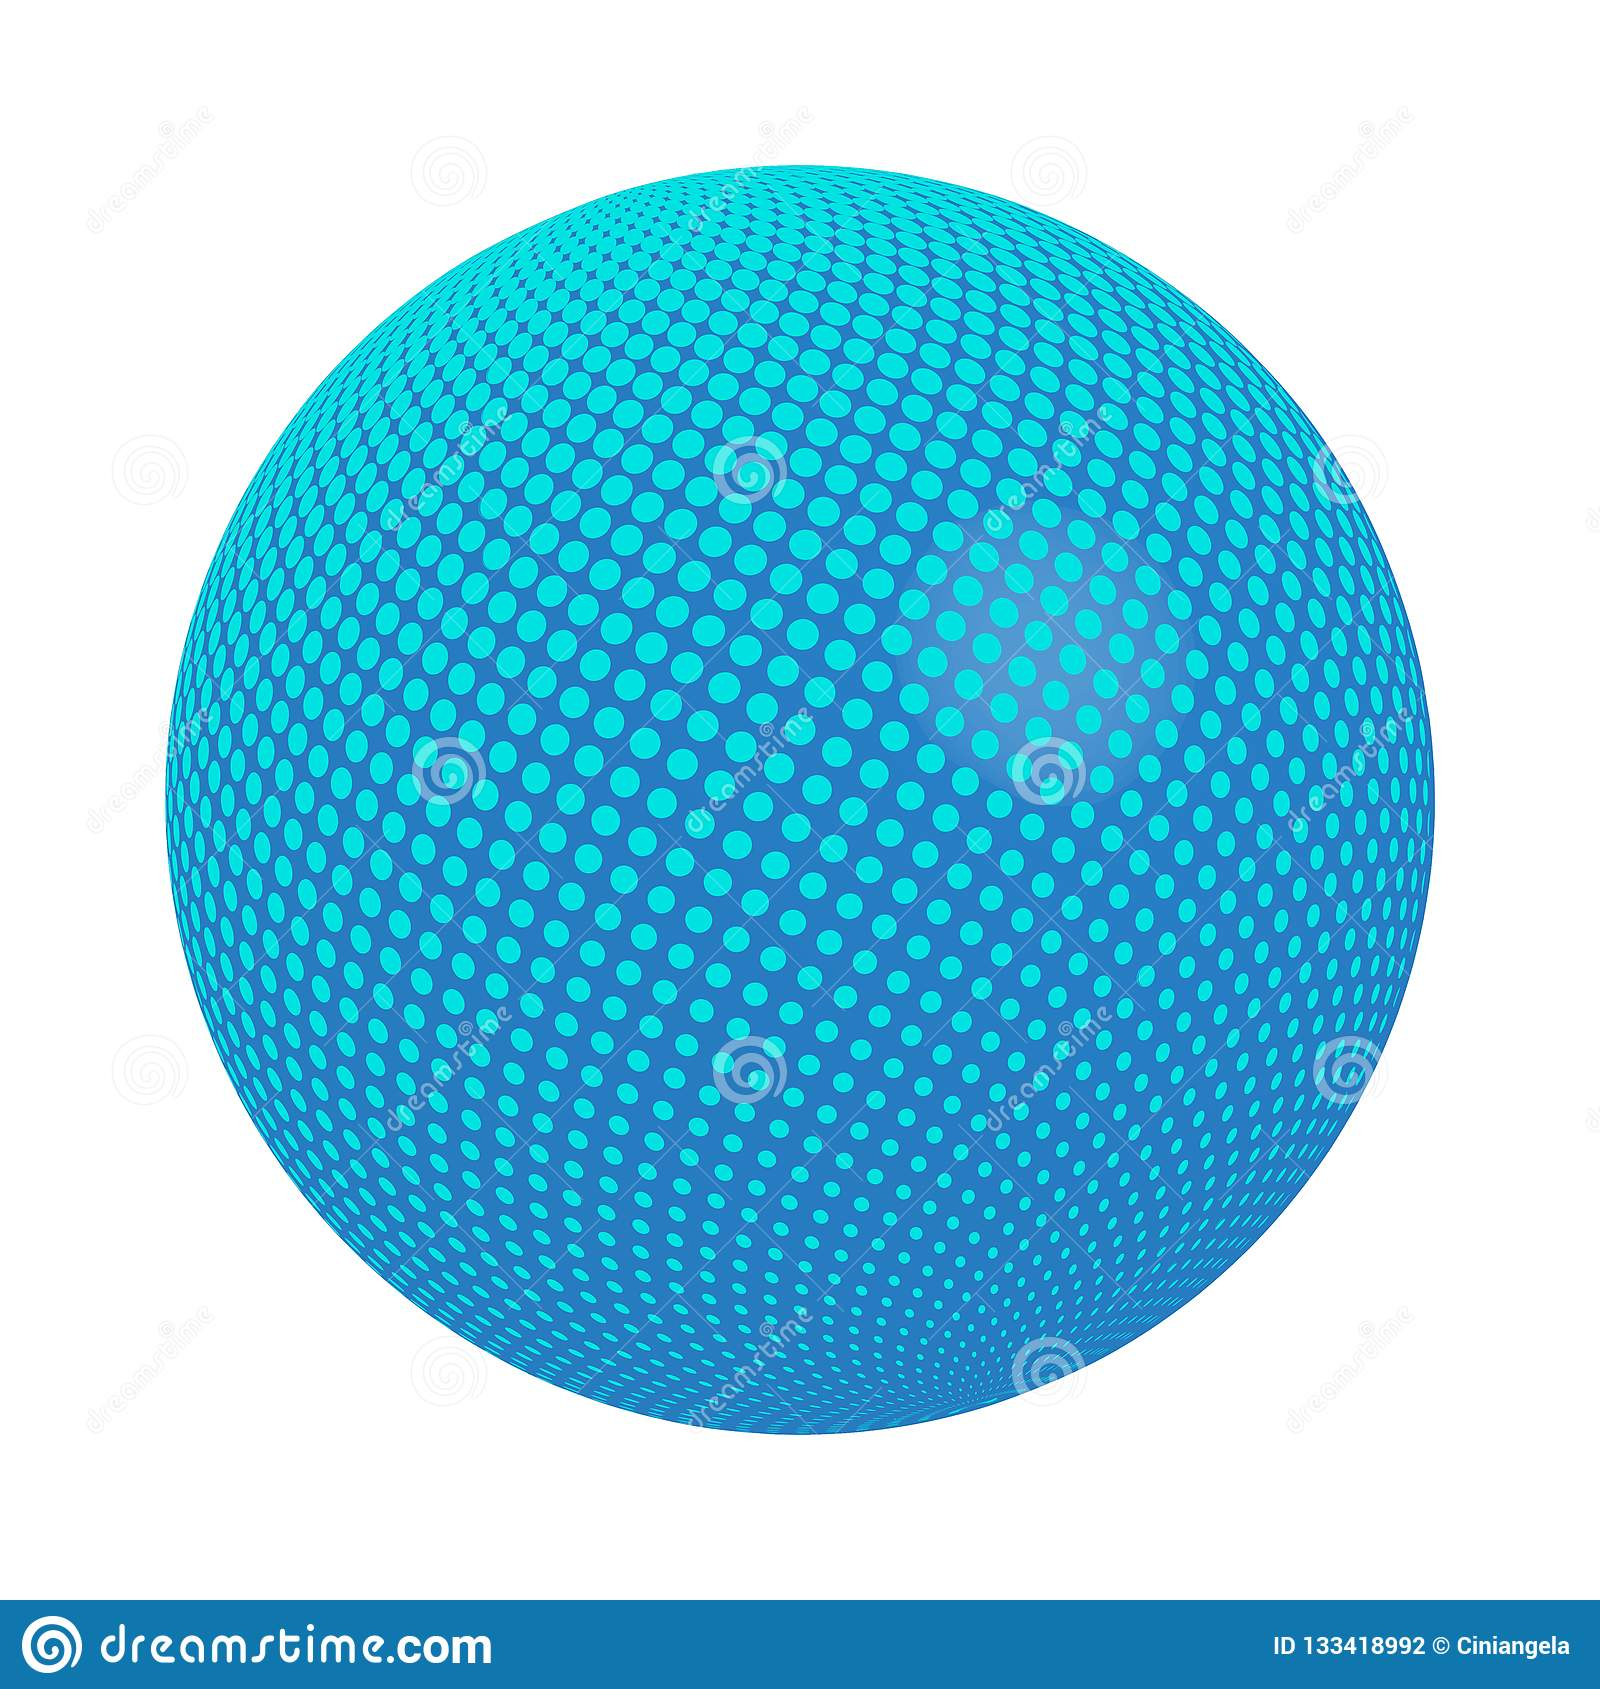 Dot Sphere Logo Template Globe Vector Icon:  Sphere With Dots Vector Stock Vector . Illustration Of